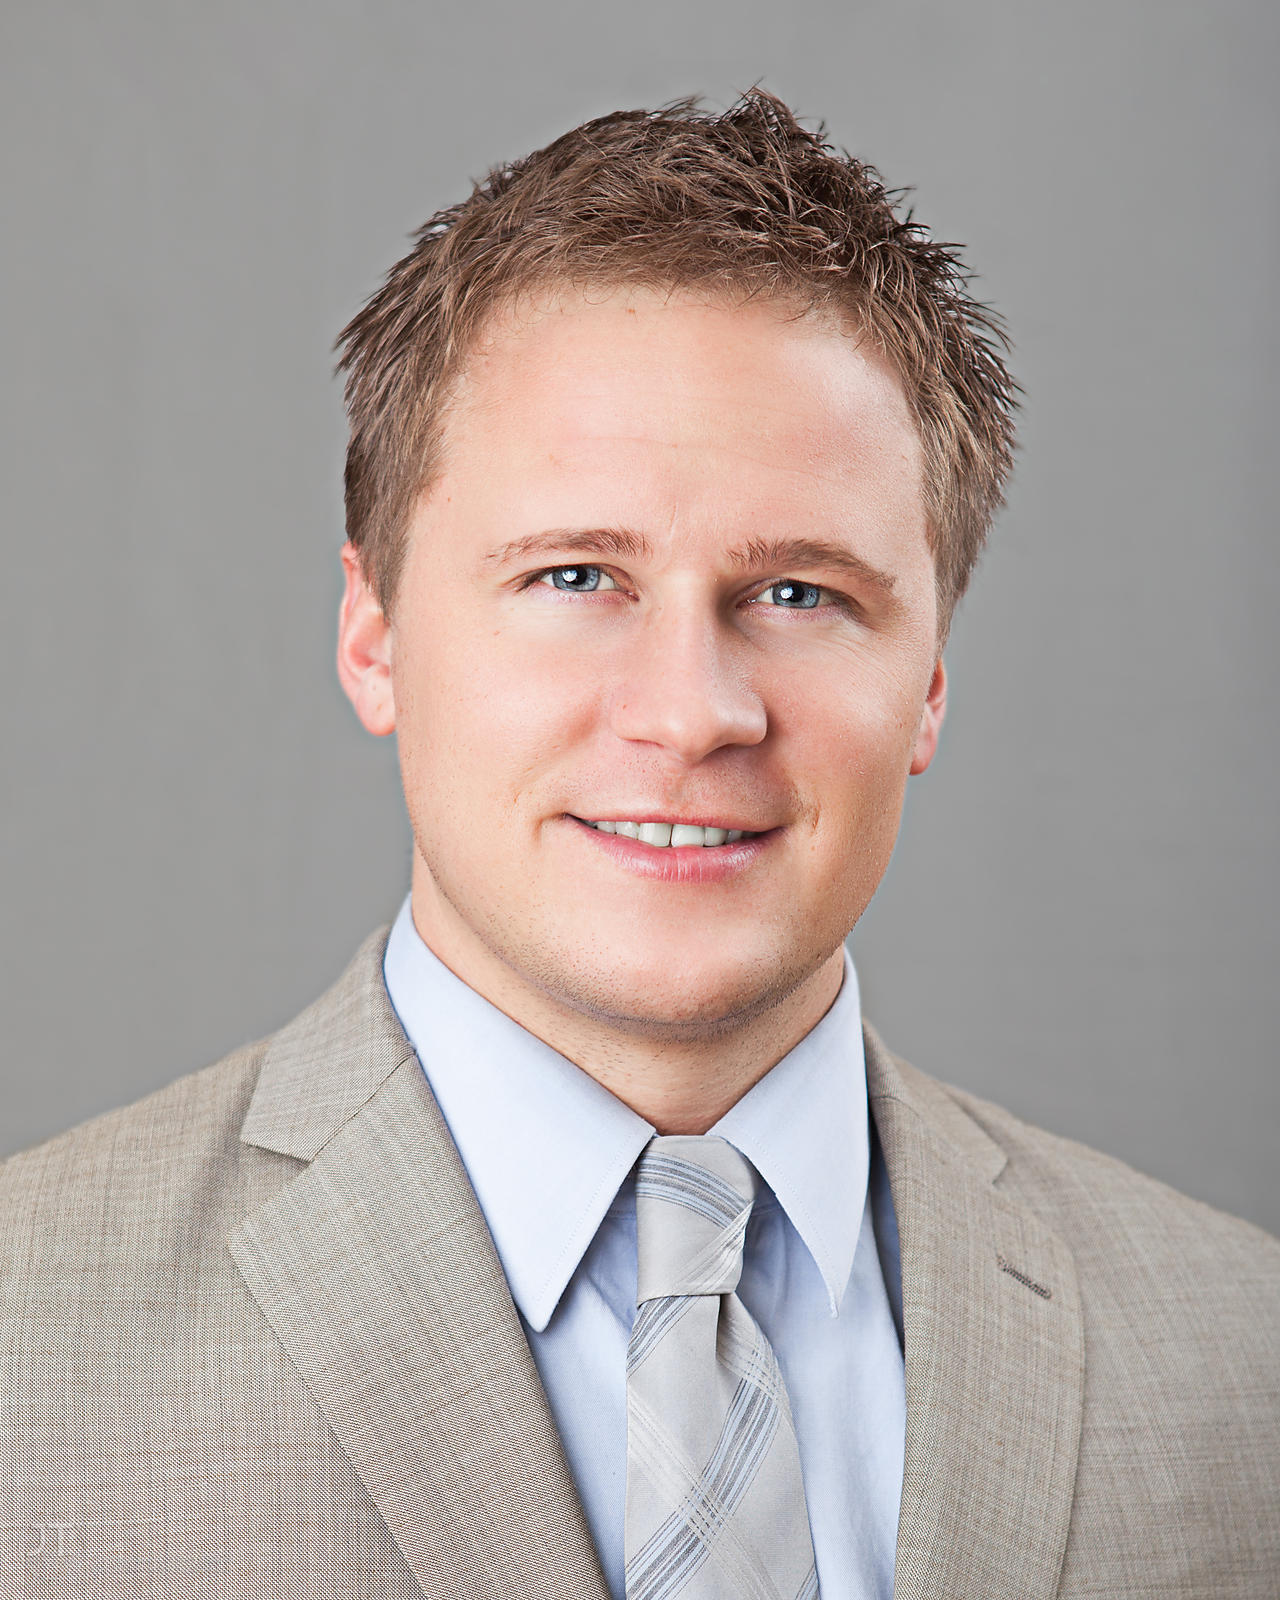 Ryan Thomas Corporate Head shot (Justin Torner/Freelance)